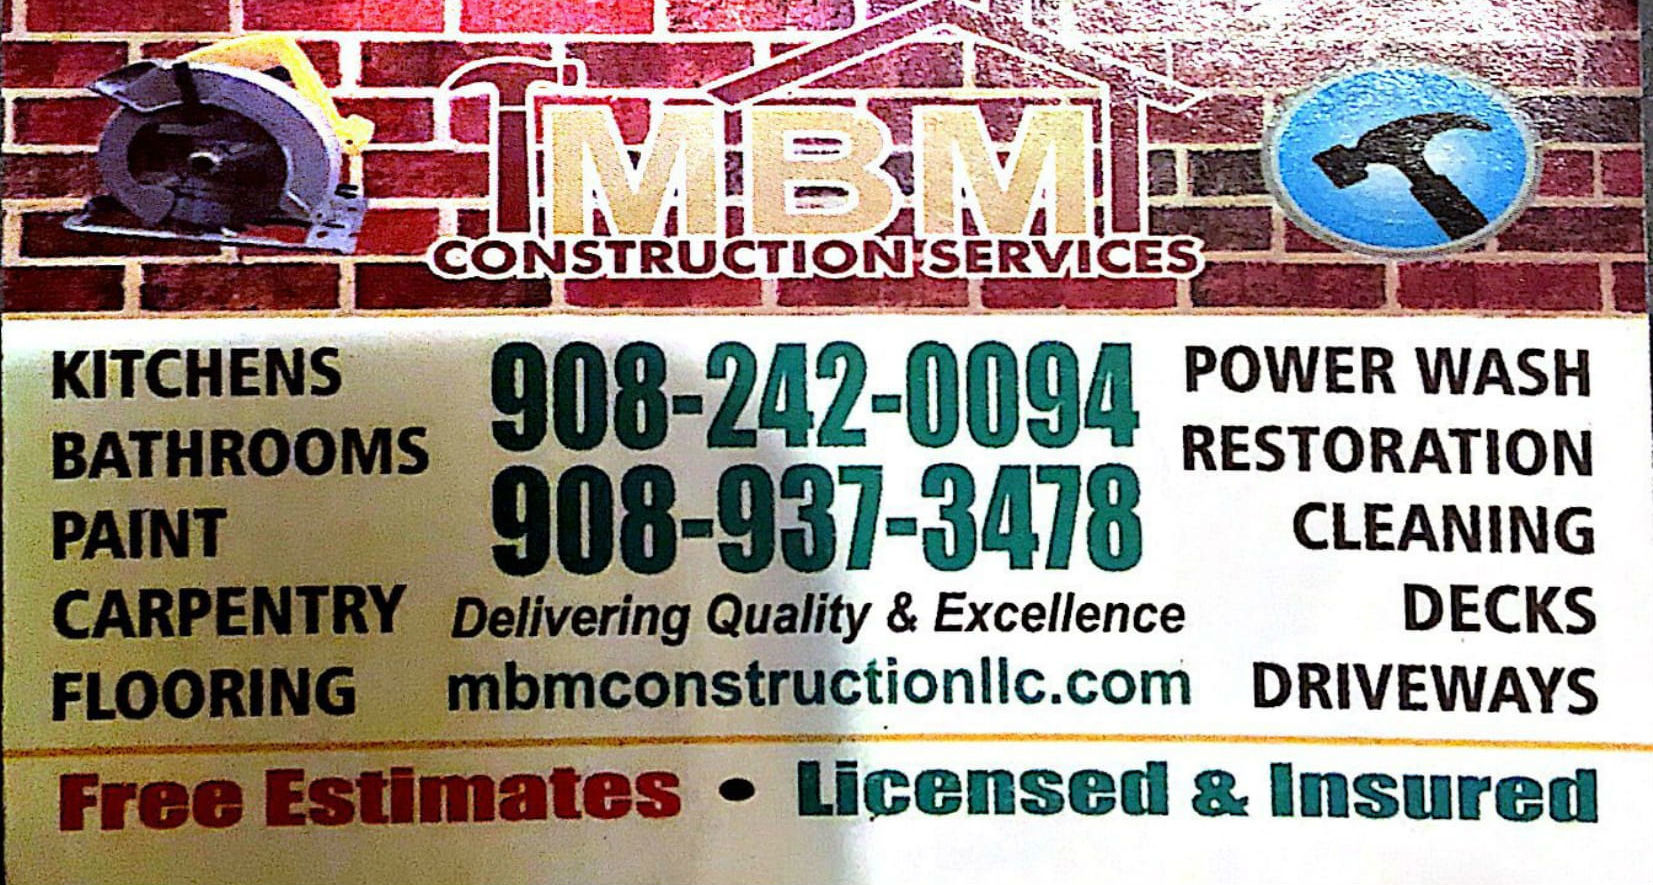 Residential Construction Company in Elizabeth, NJ | (908